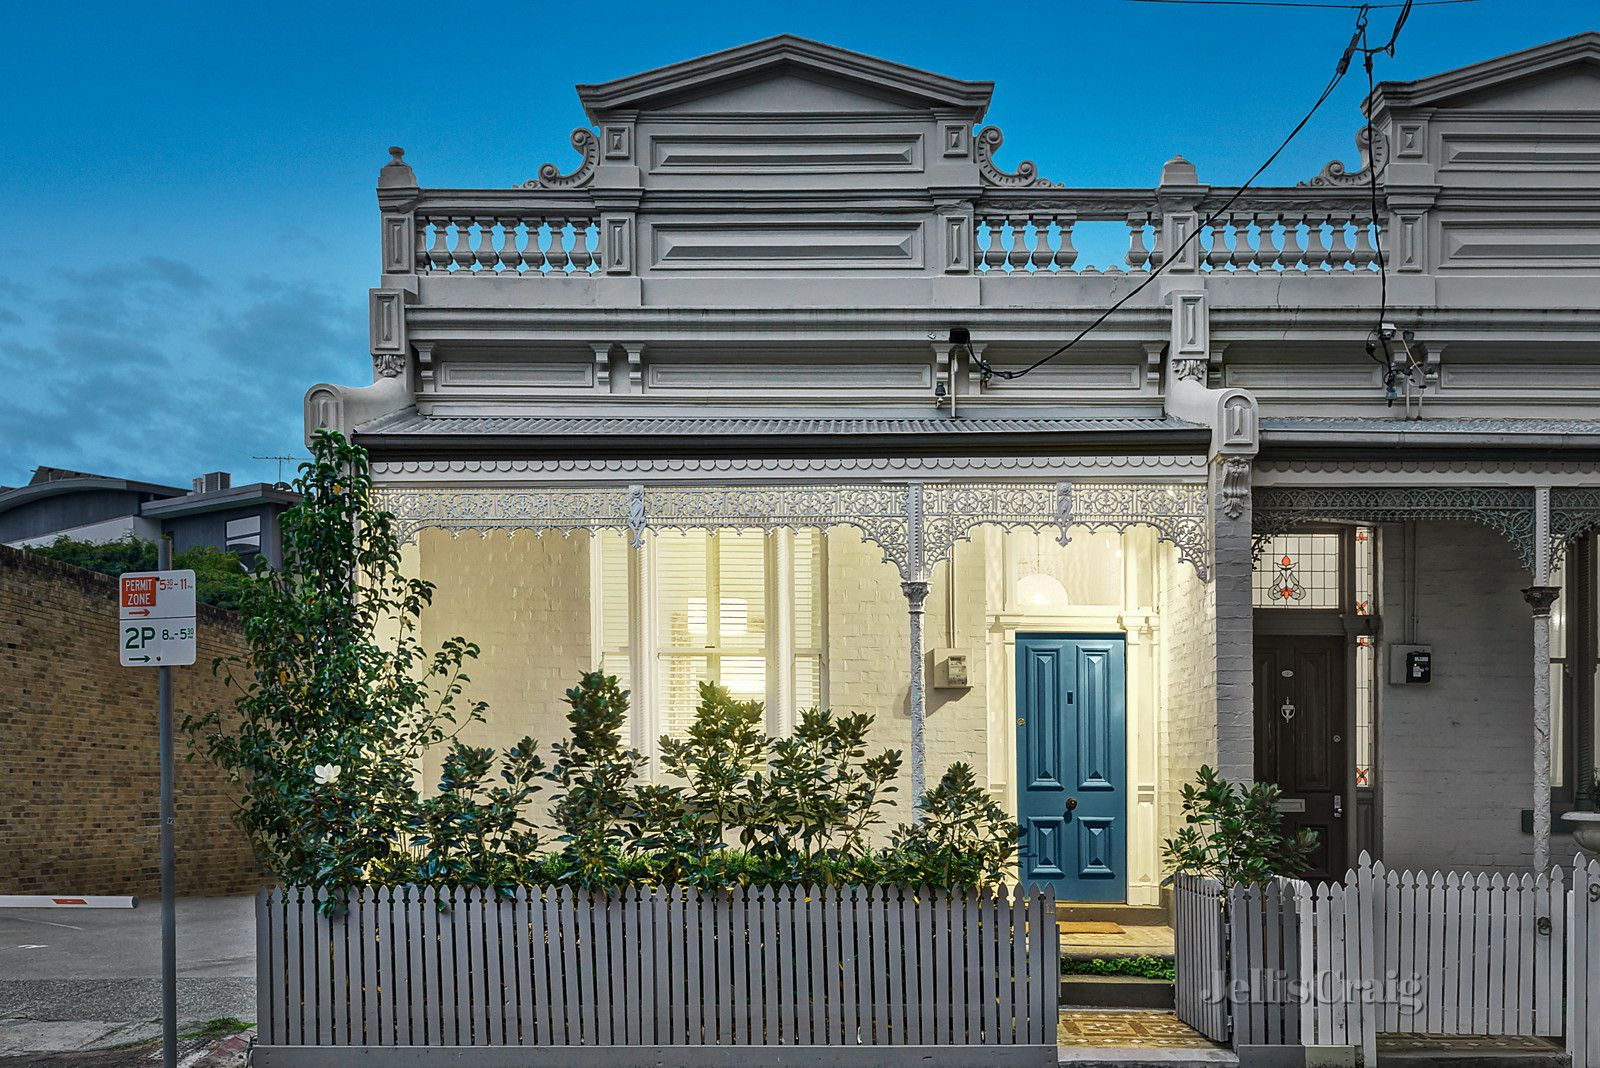 All About The Victorian-Style Terrace House - Australian Architecture Series